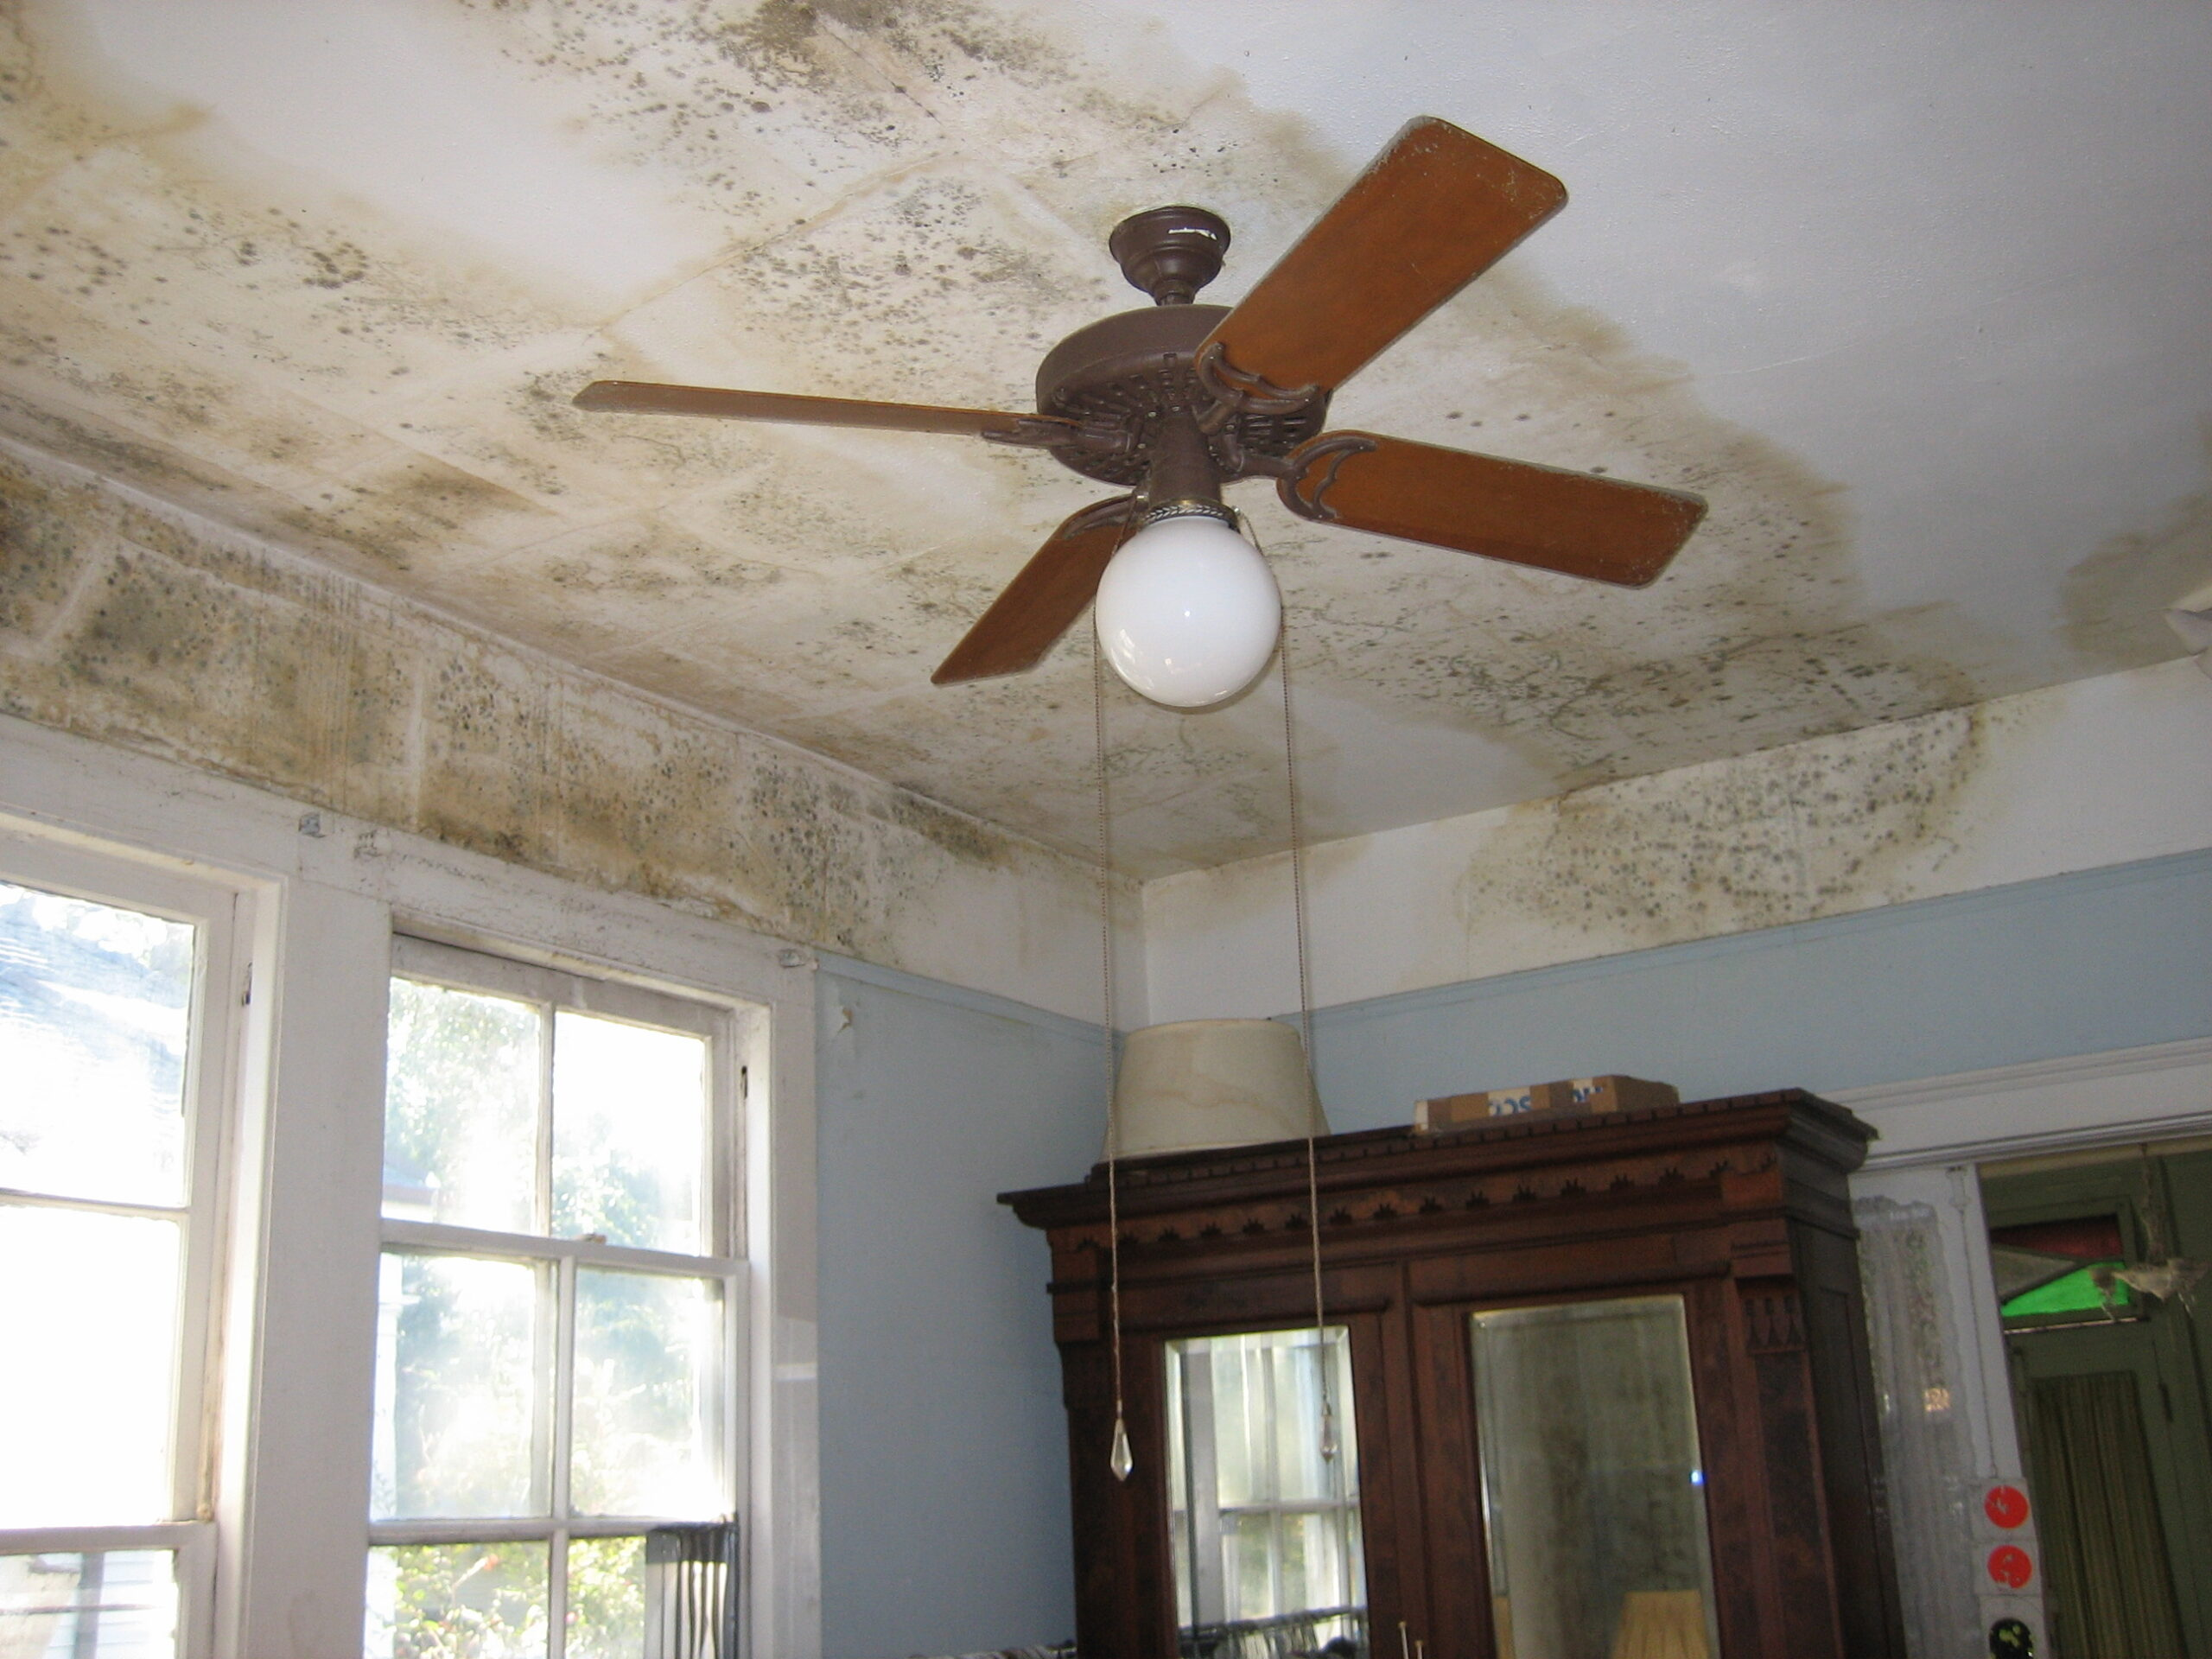 mold damage repair required on this ceiling